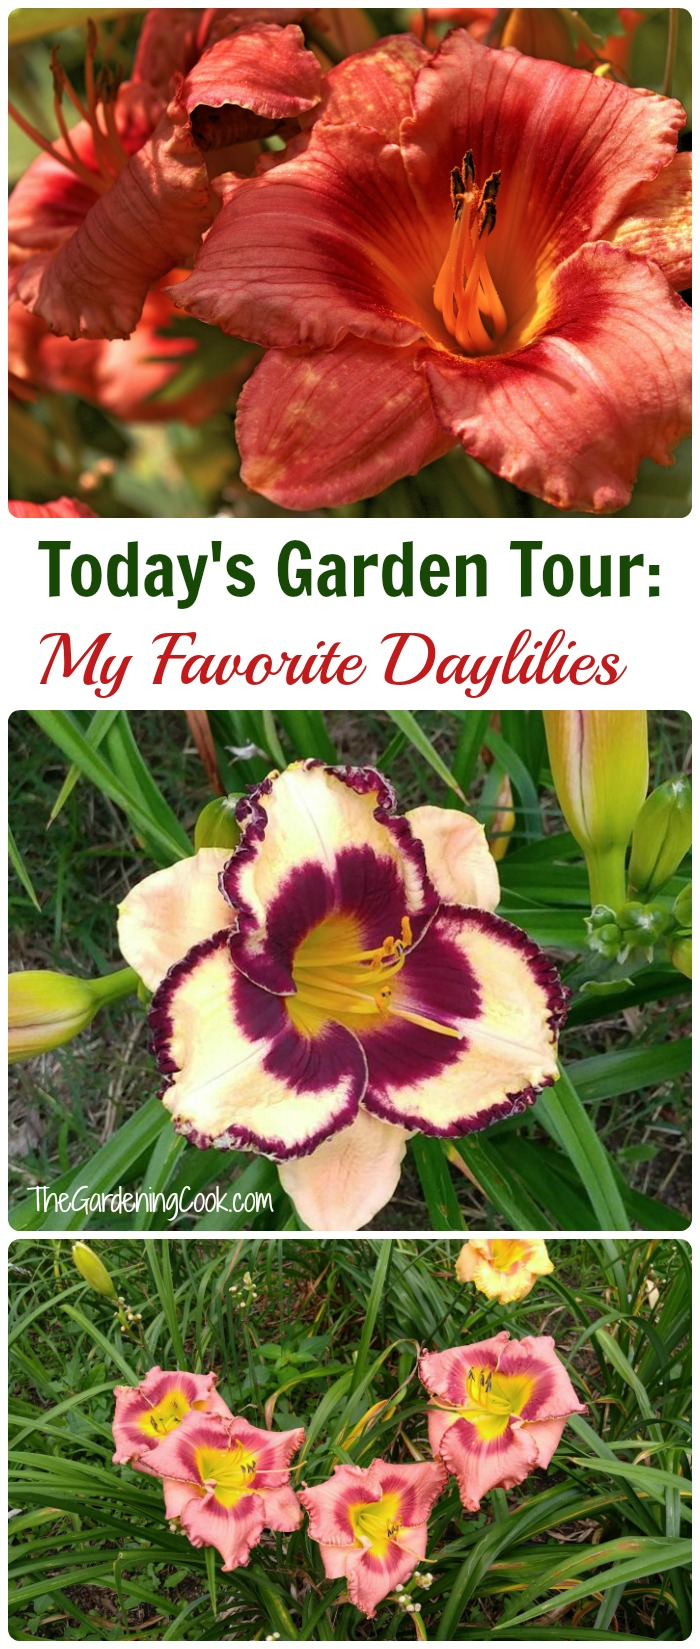 Totday's garden tour features a selection of my favorite daylilies.